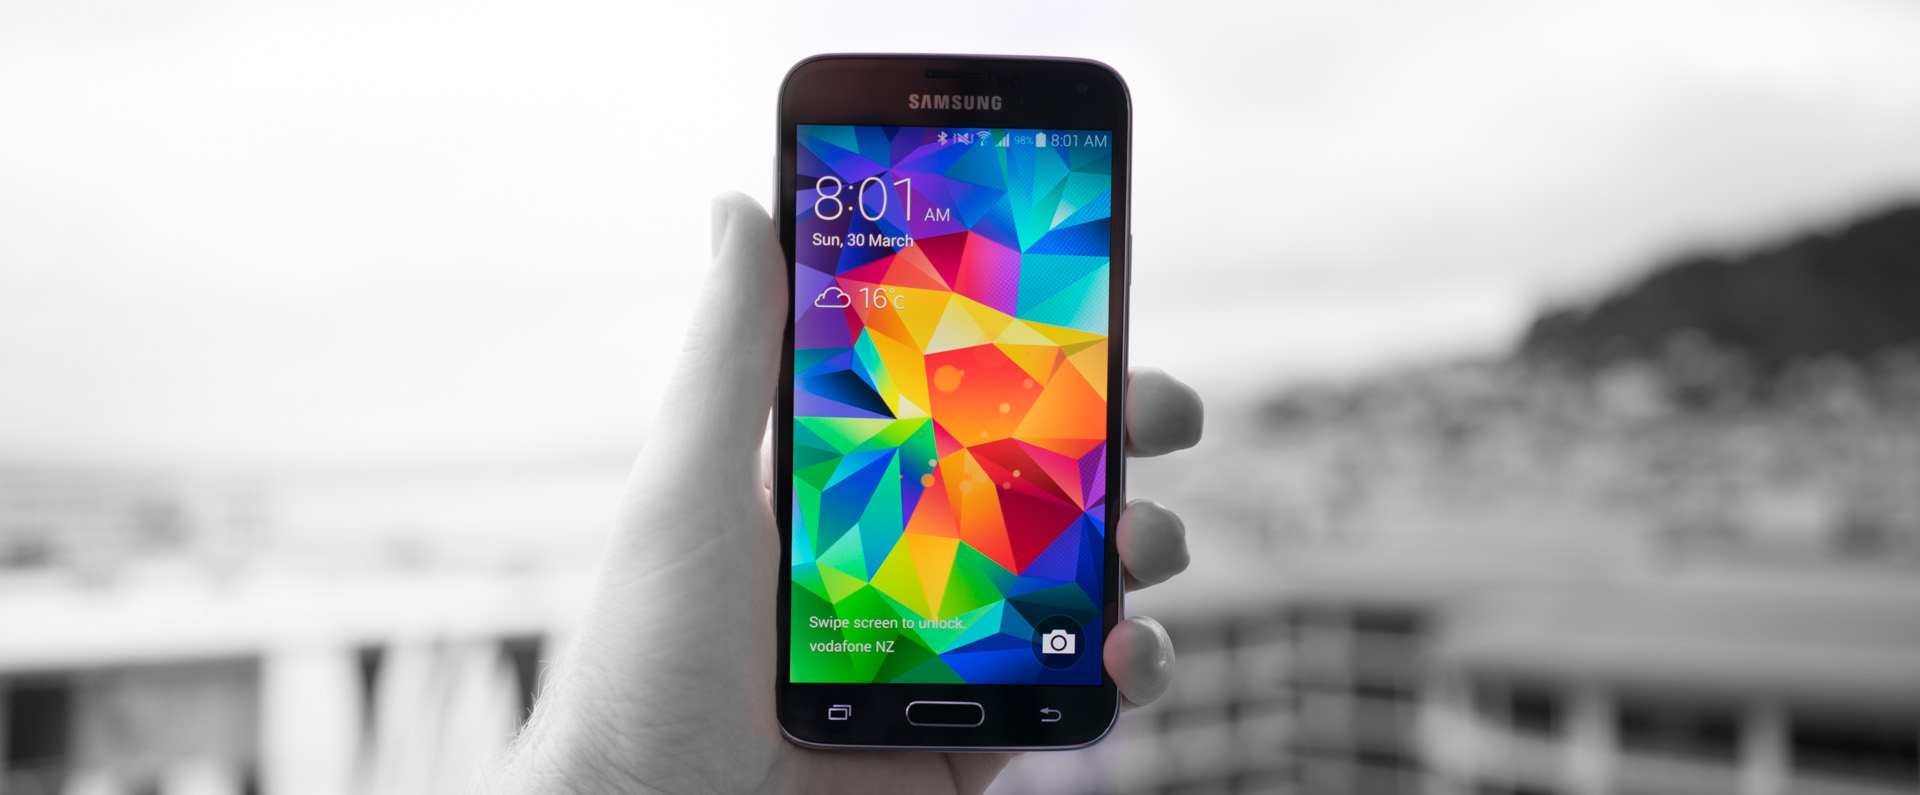 Samsung Galaxy S5 Active Release Date Specifications and Review 1920x795